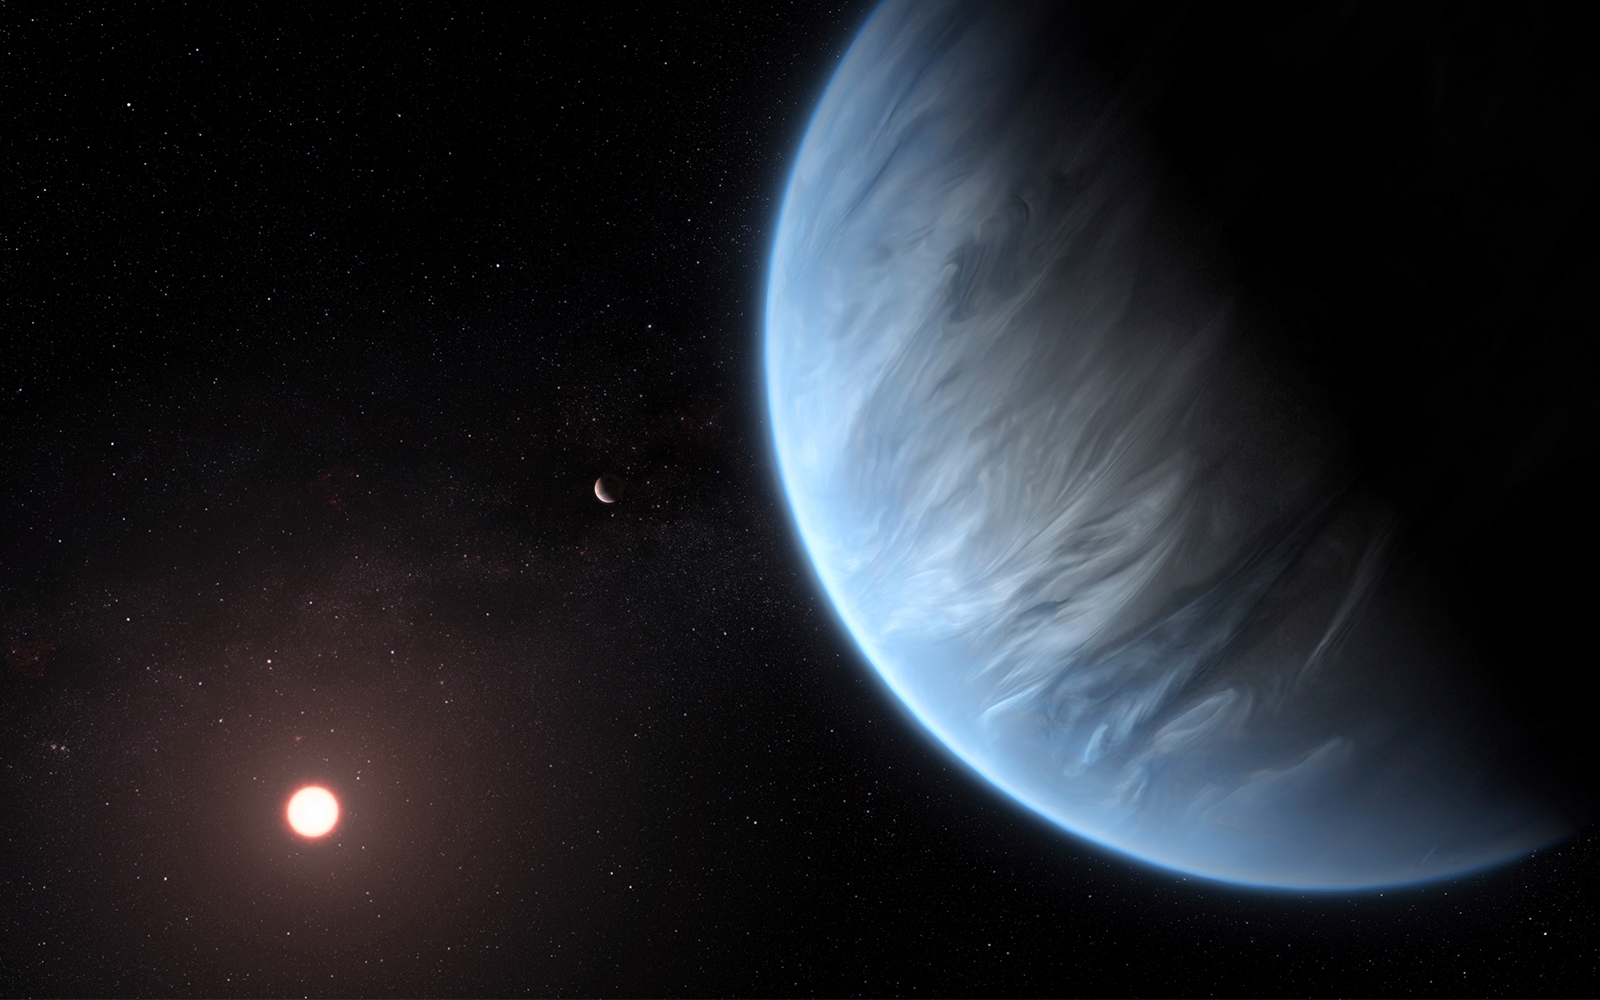 Scientists Have Discovered Water On A Potentially Habitable World